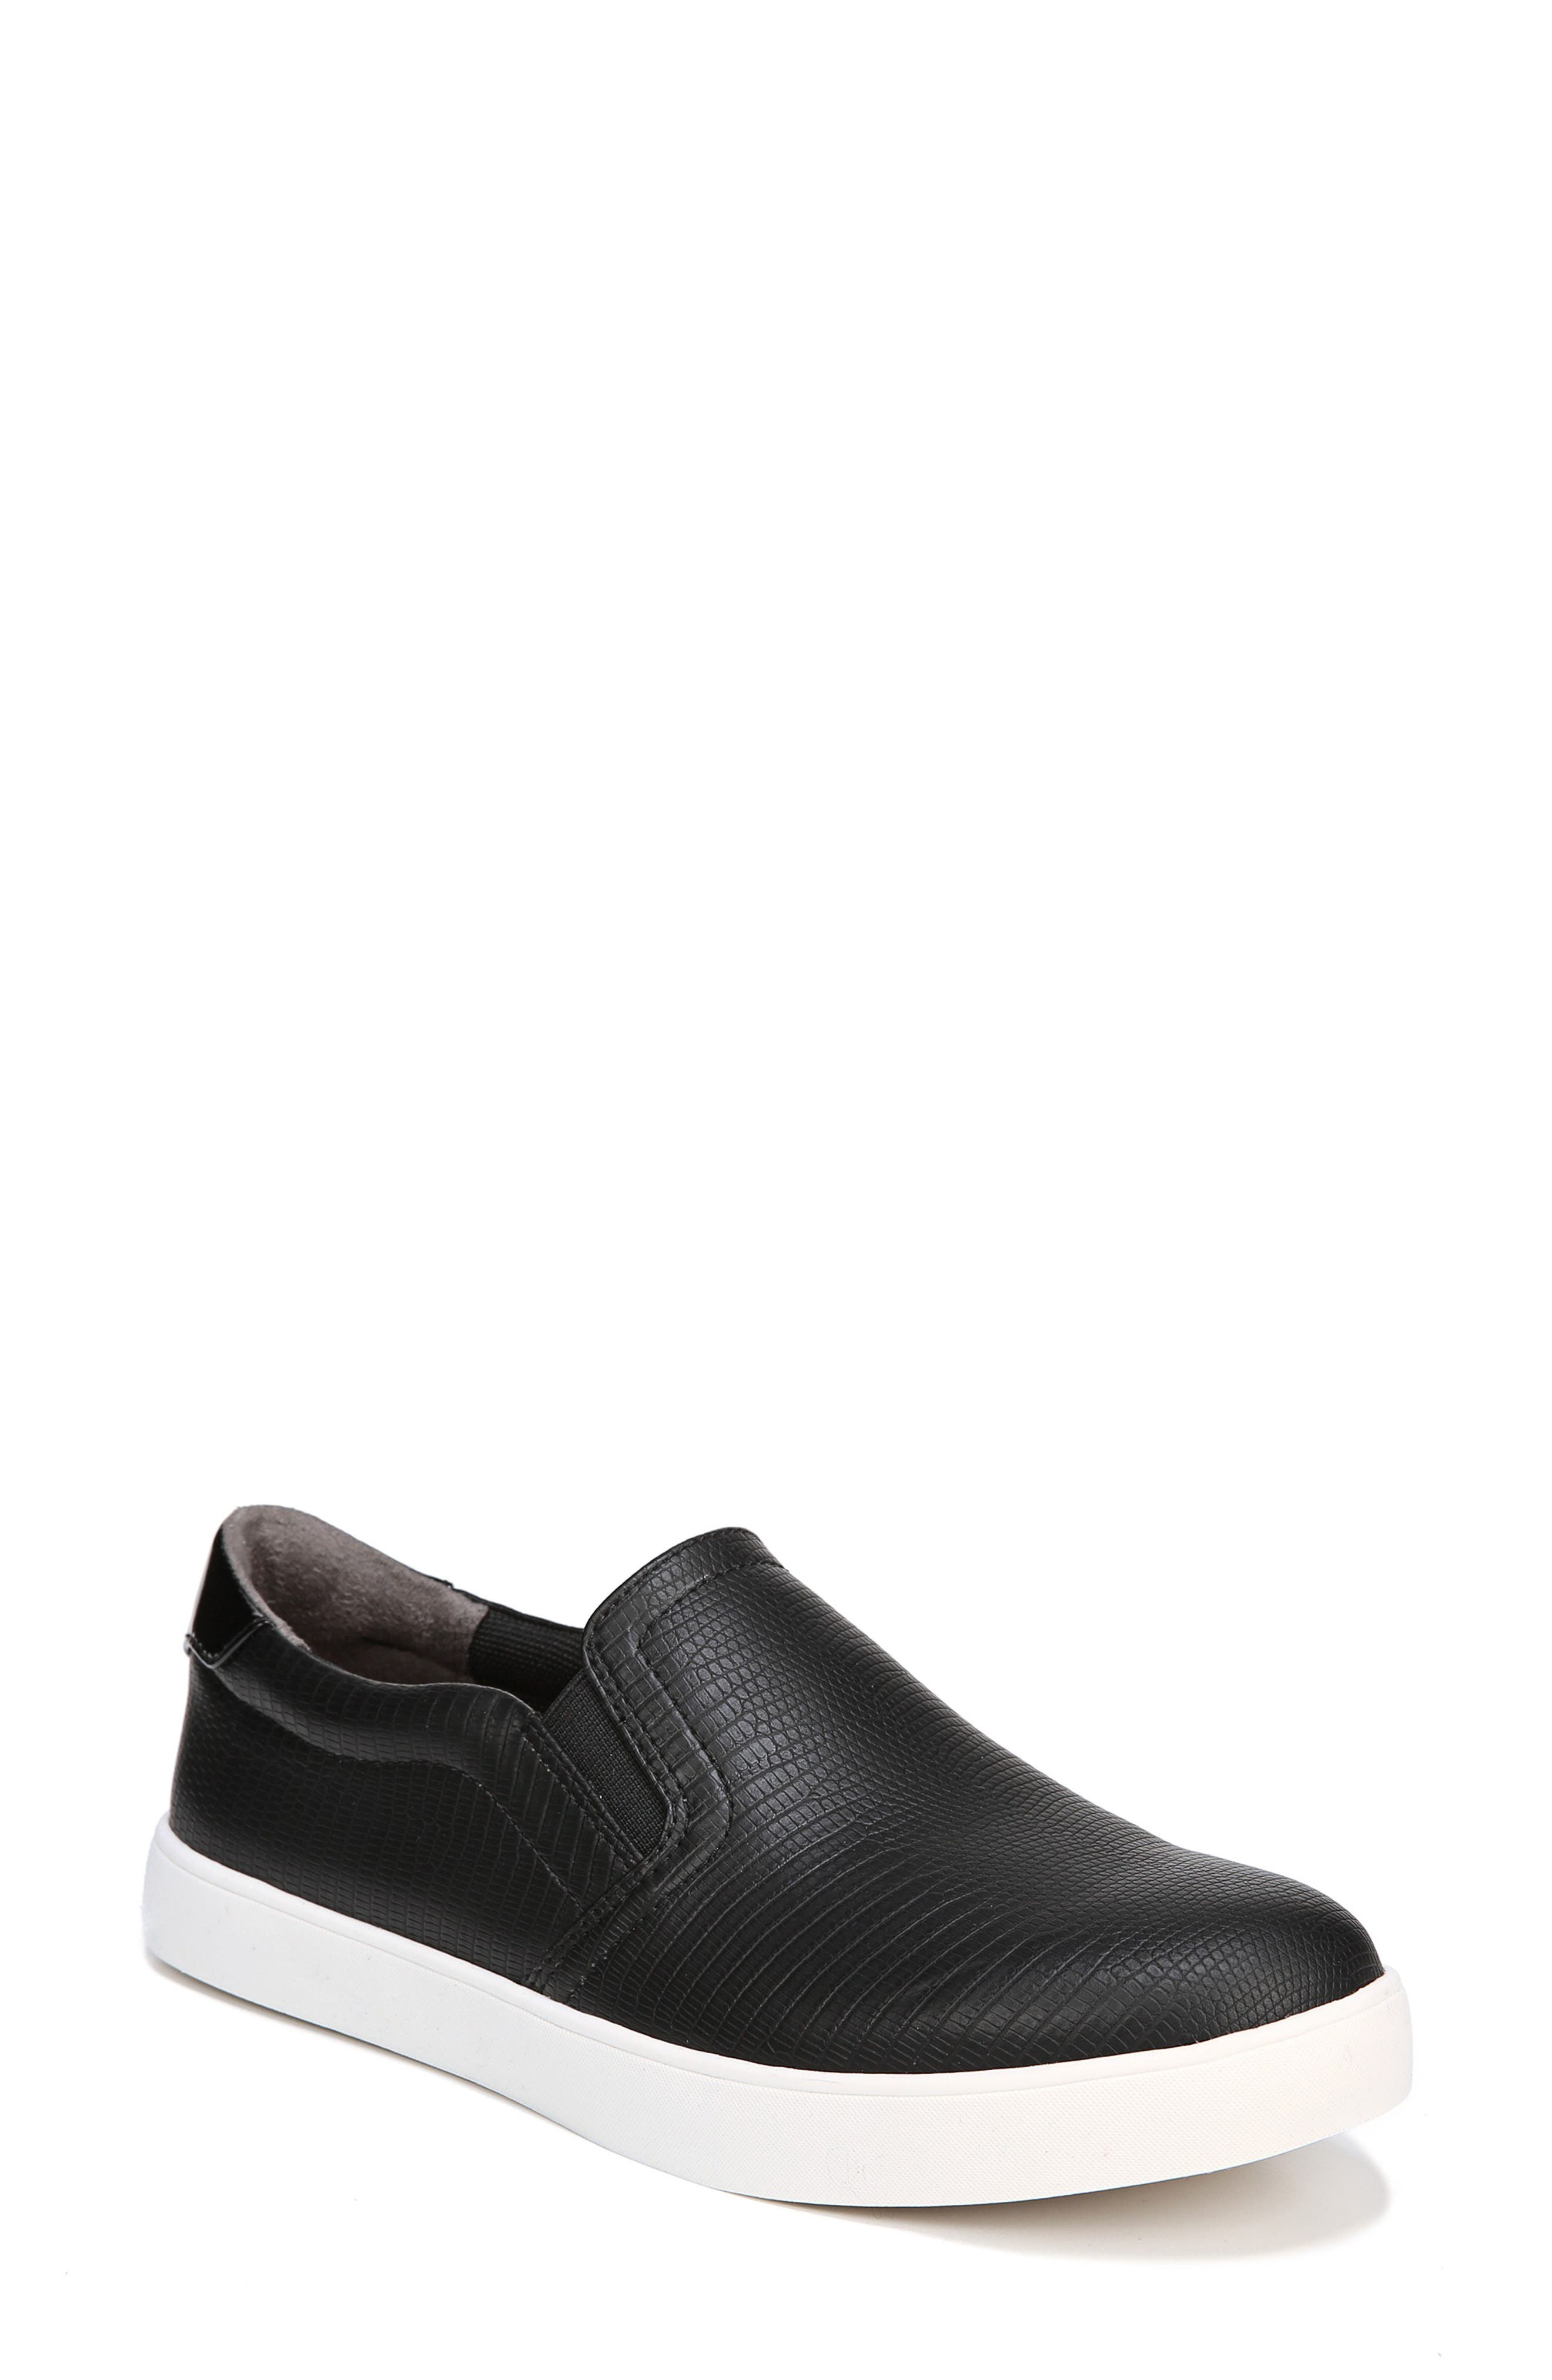 Madison Slip-On Sneaker,                         Main,                         color, BLACK FAUX LEATHER